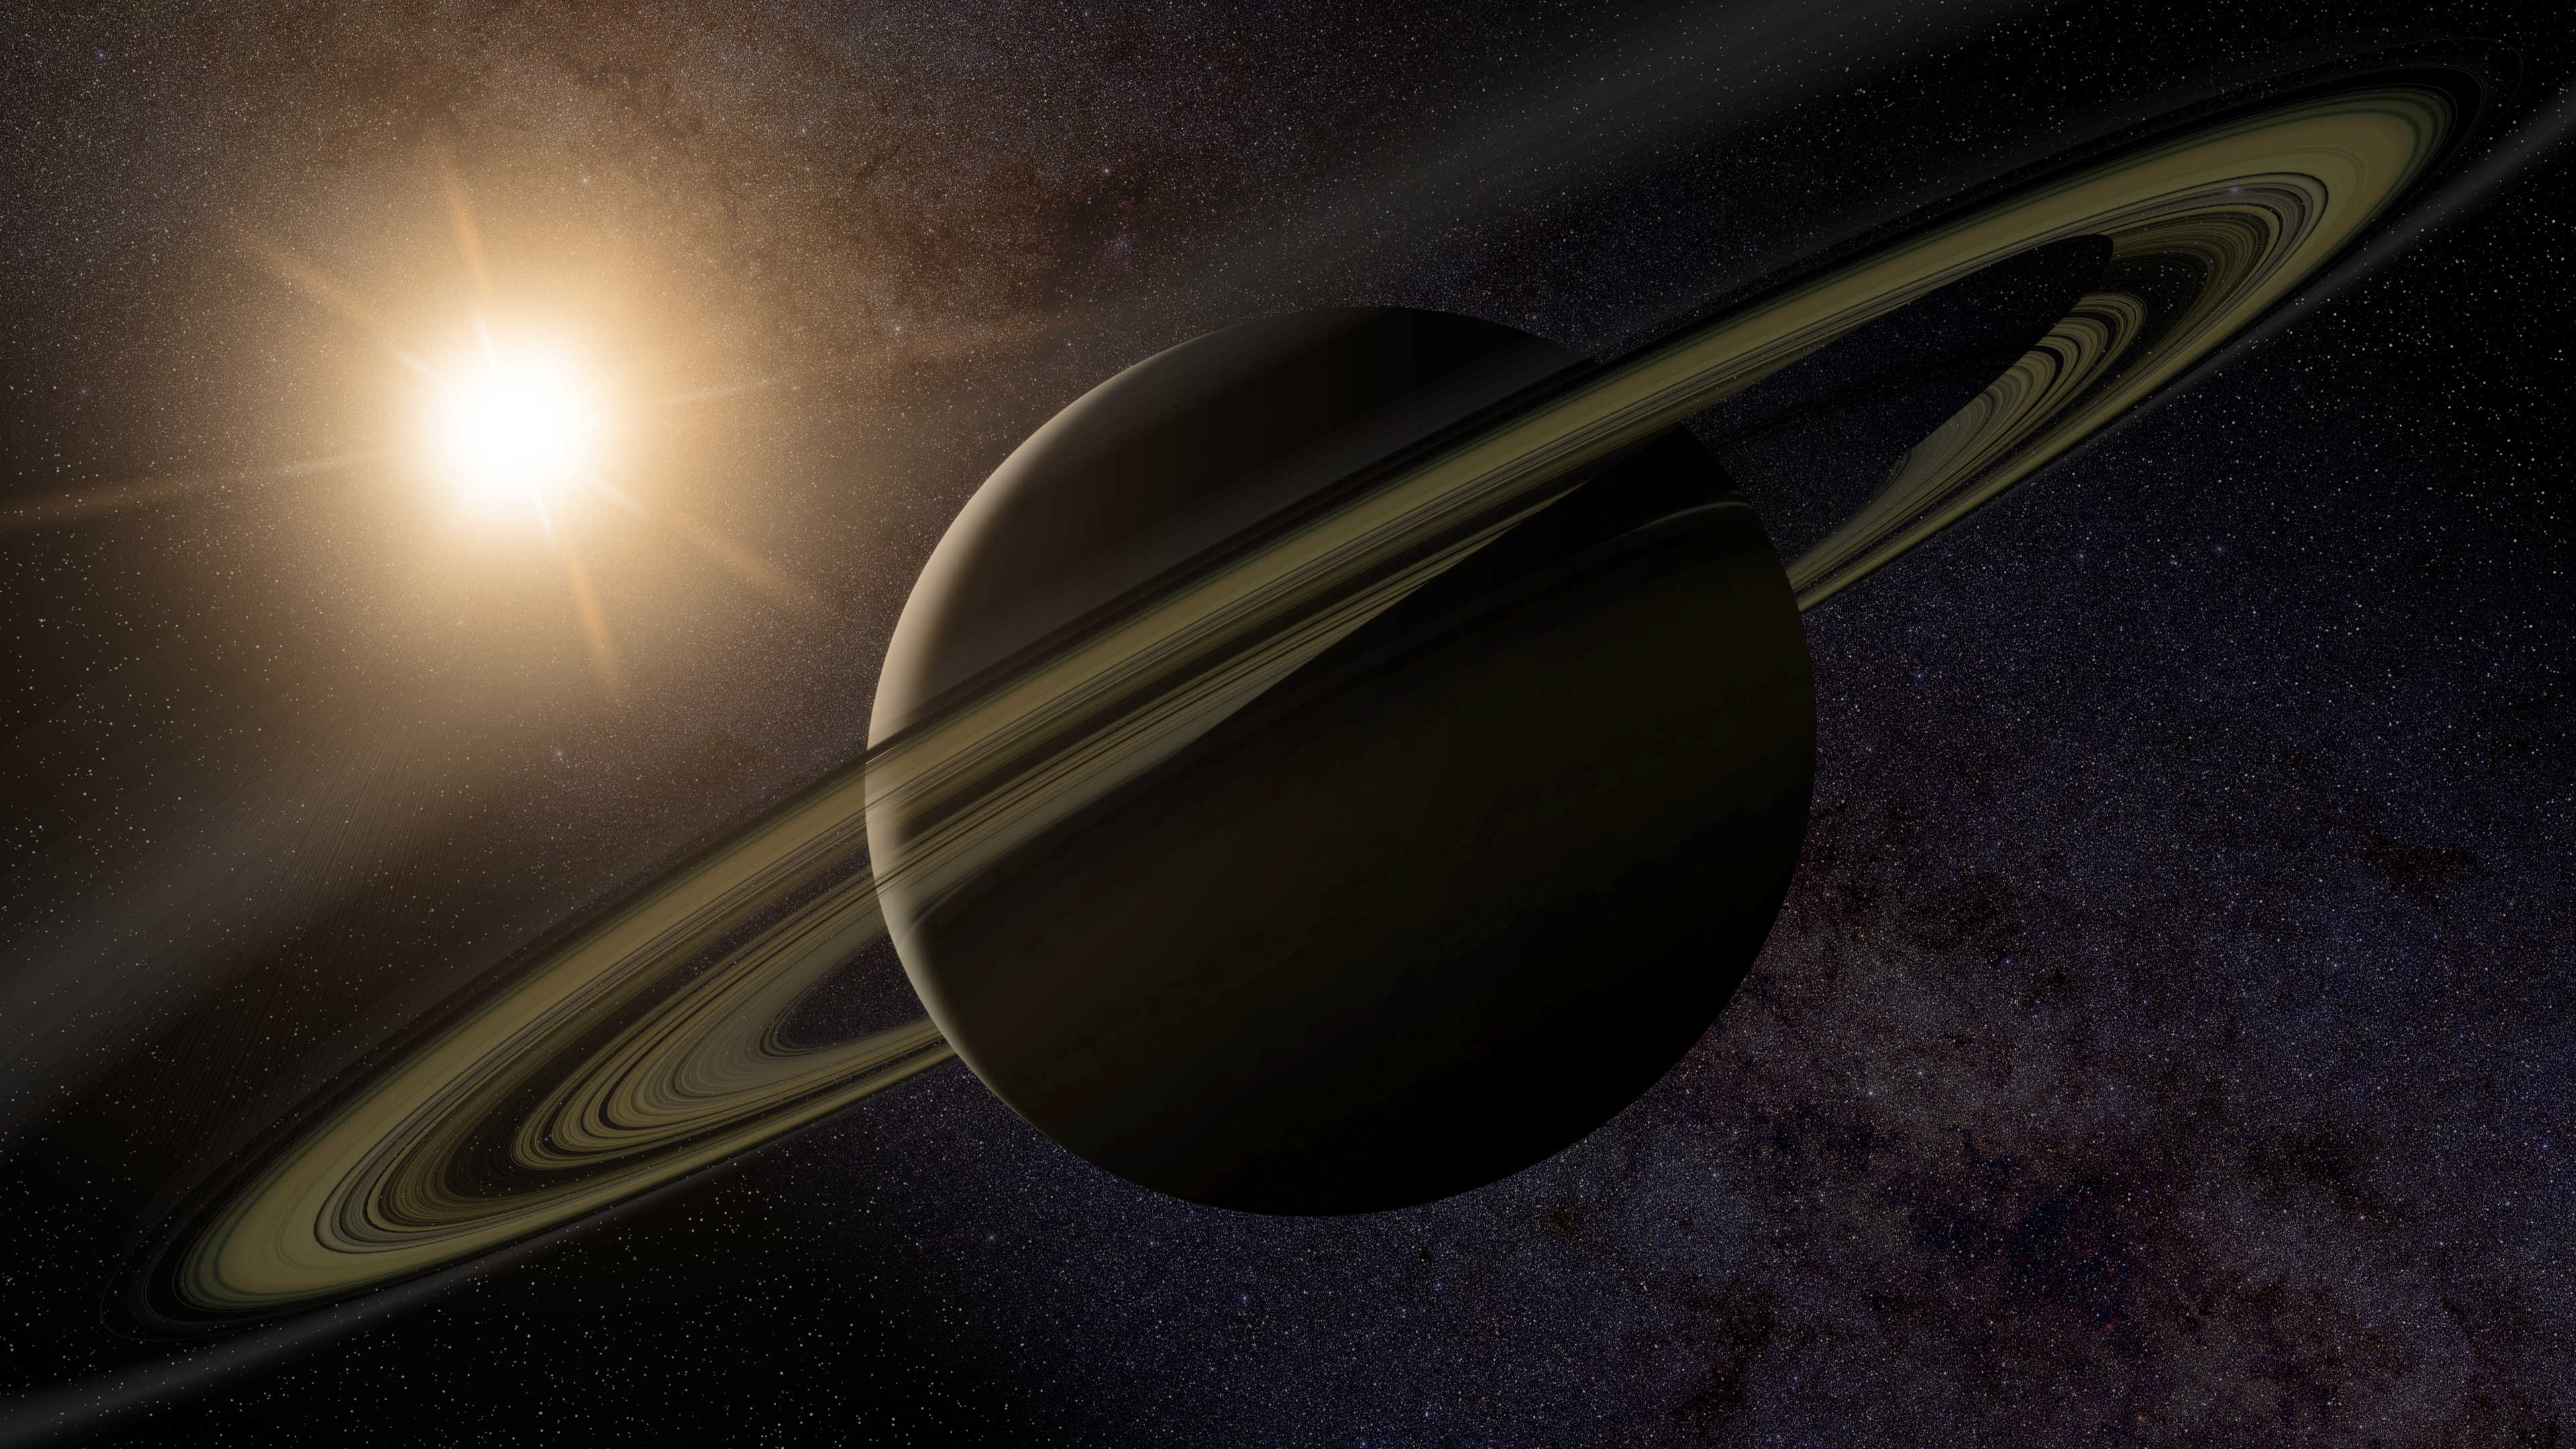 planet saturn pictures - HD 3840×2160